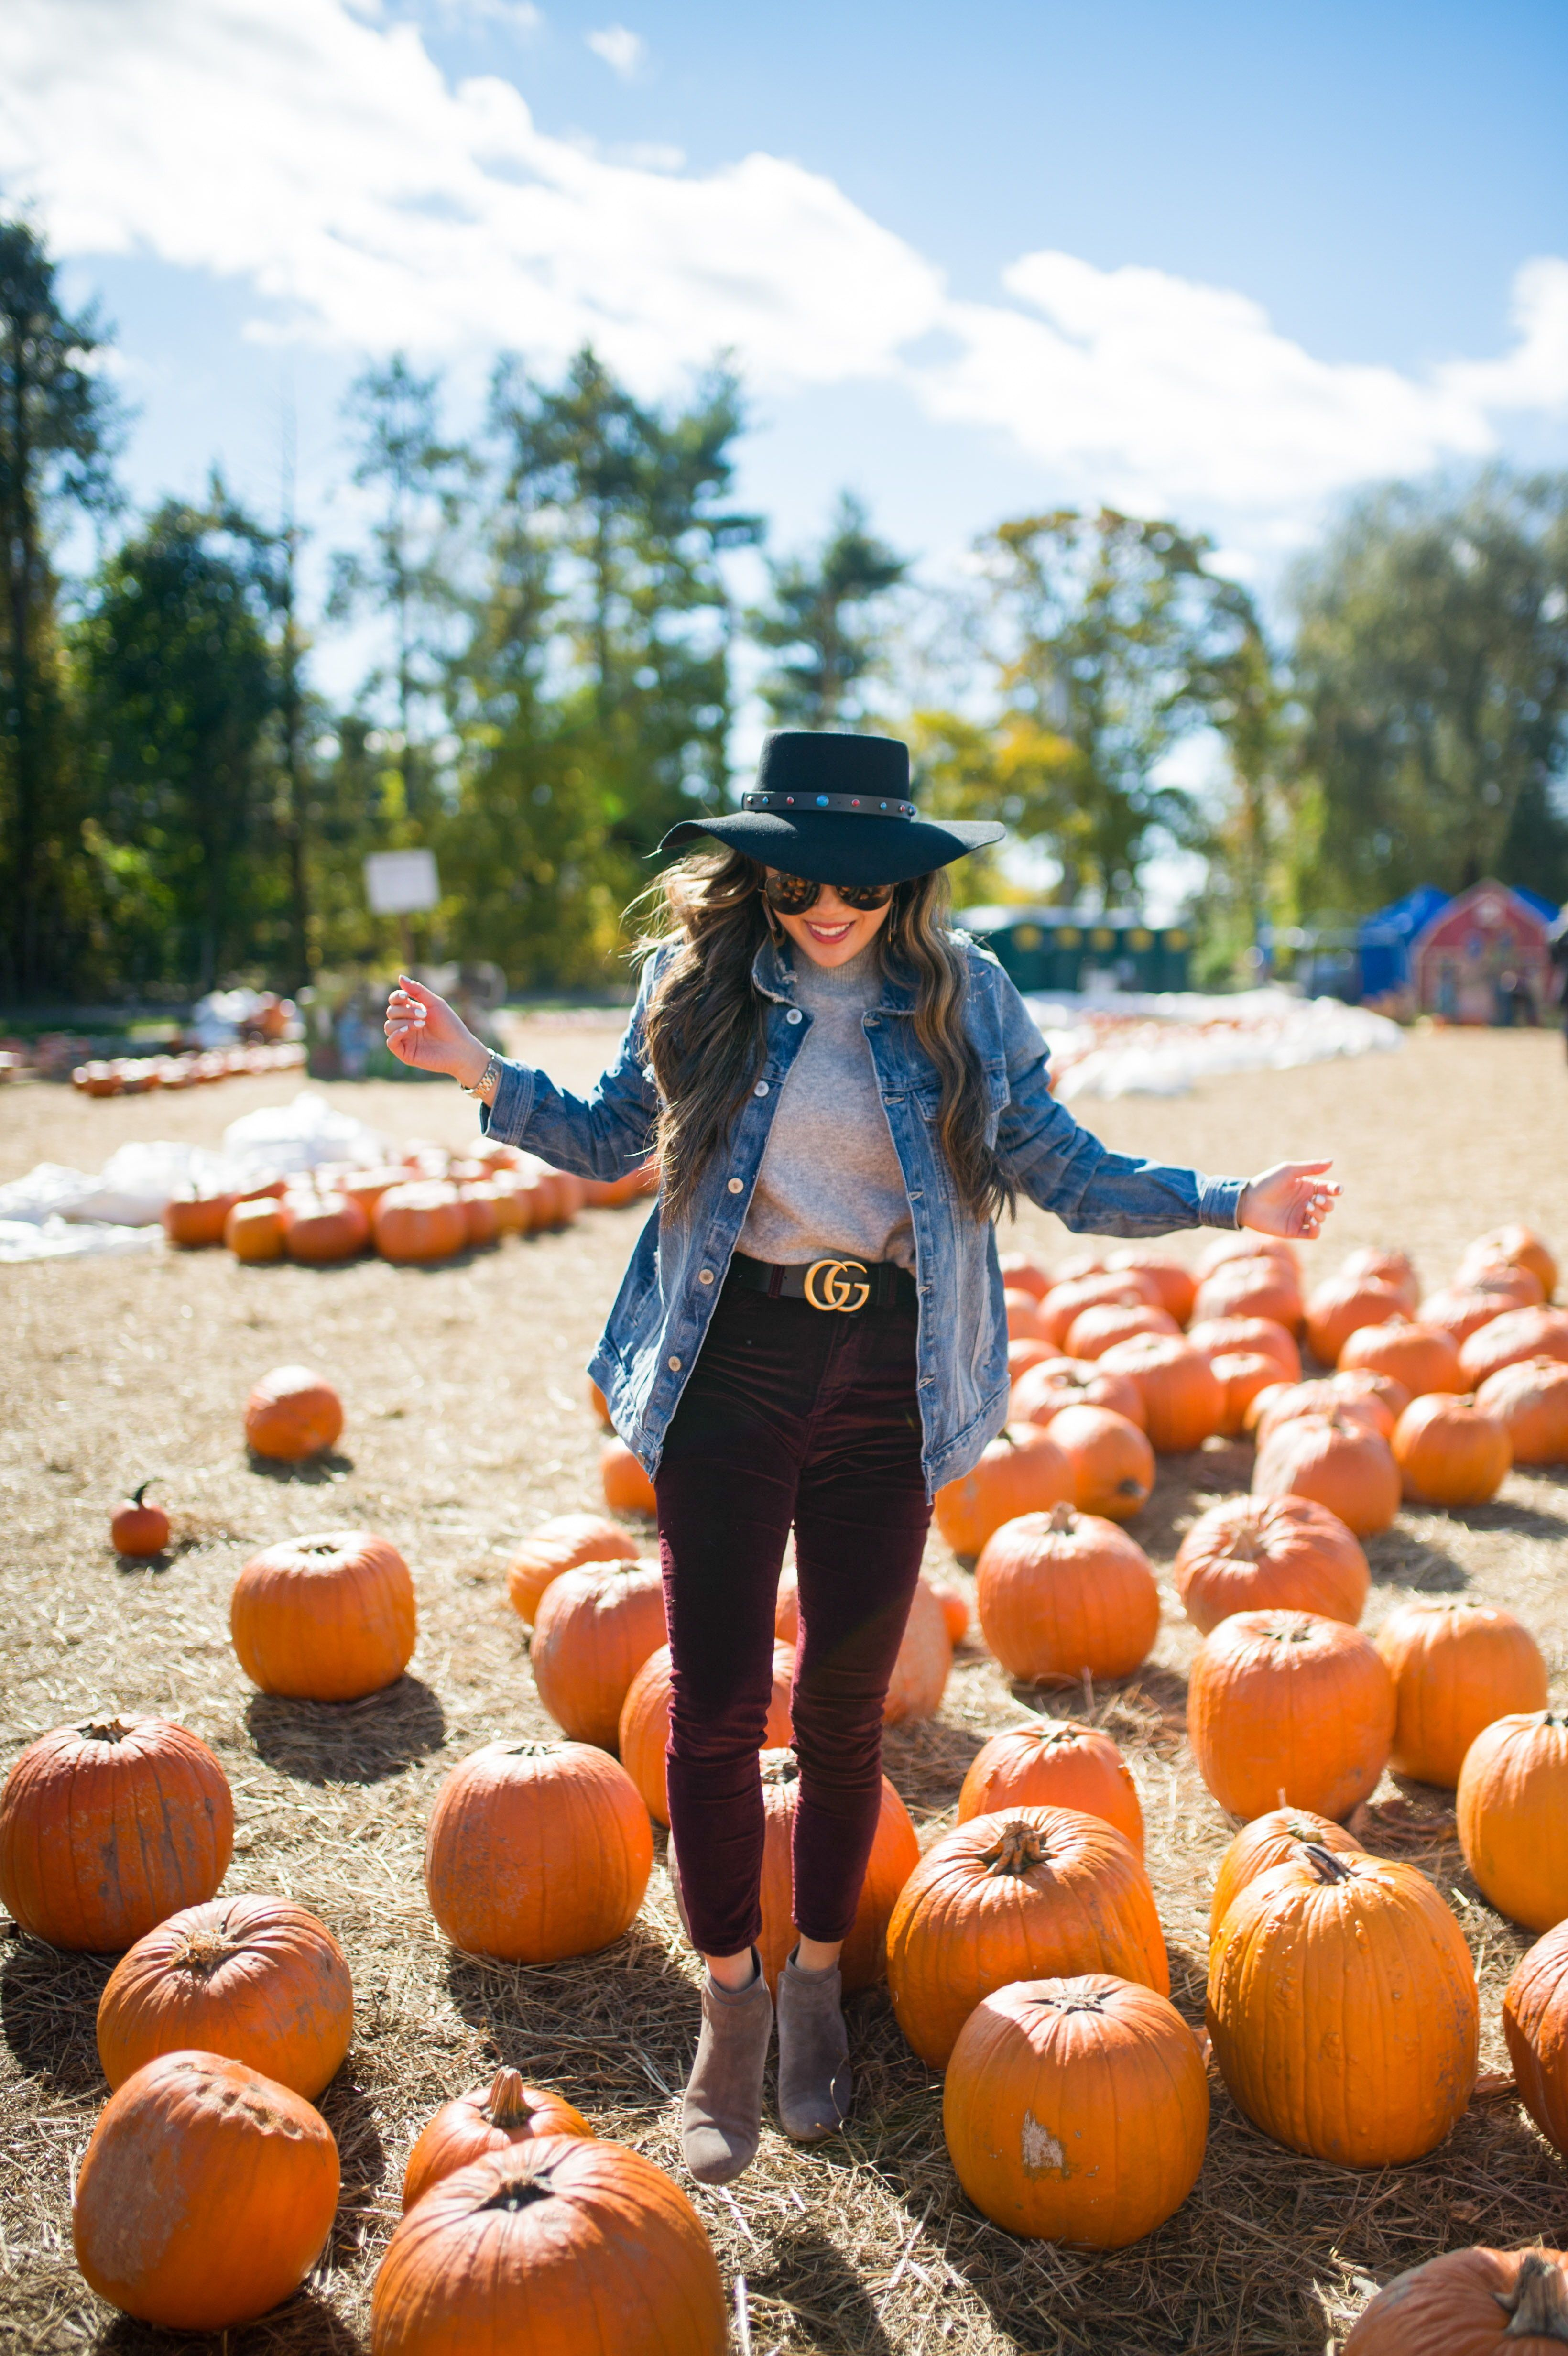 Fall Style | Fall fashion photography | Pumpkin patch outfit fall | Jean jacket outfit fall | Pumpkin patch photoshoot  fall | NYC blogger photo shoot ideas | NYC blogger | Fashion blogger | Fashion photography | Fashion Photographer | NYC photographer | Laurel Creative #pumpkinpatchoutfit